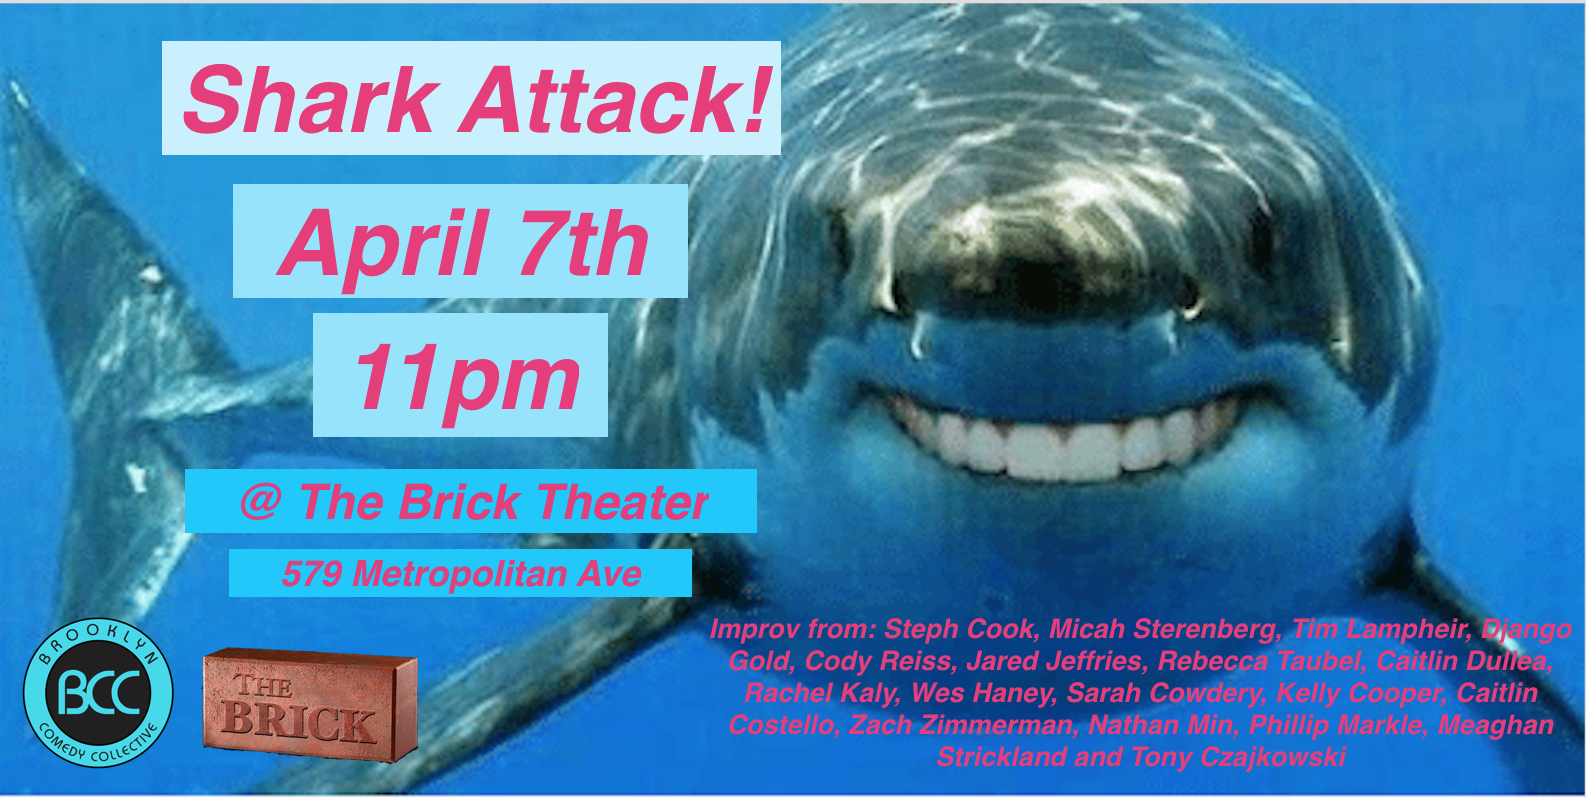 Shark Attack Poster.png